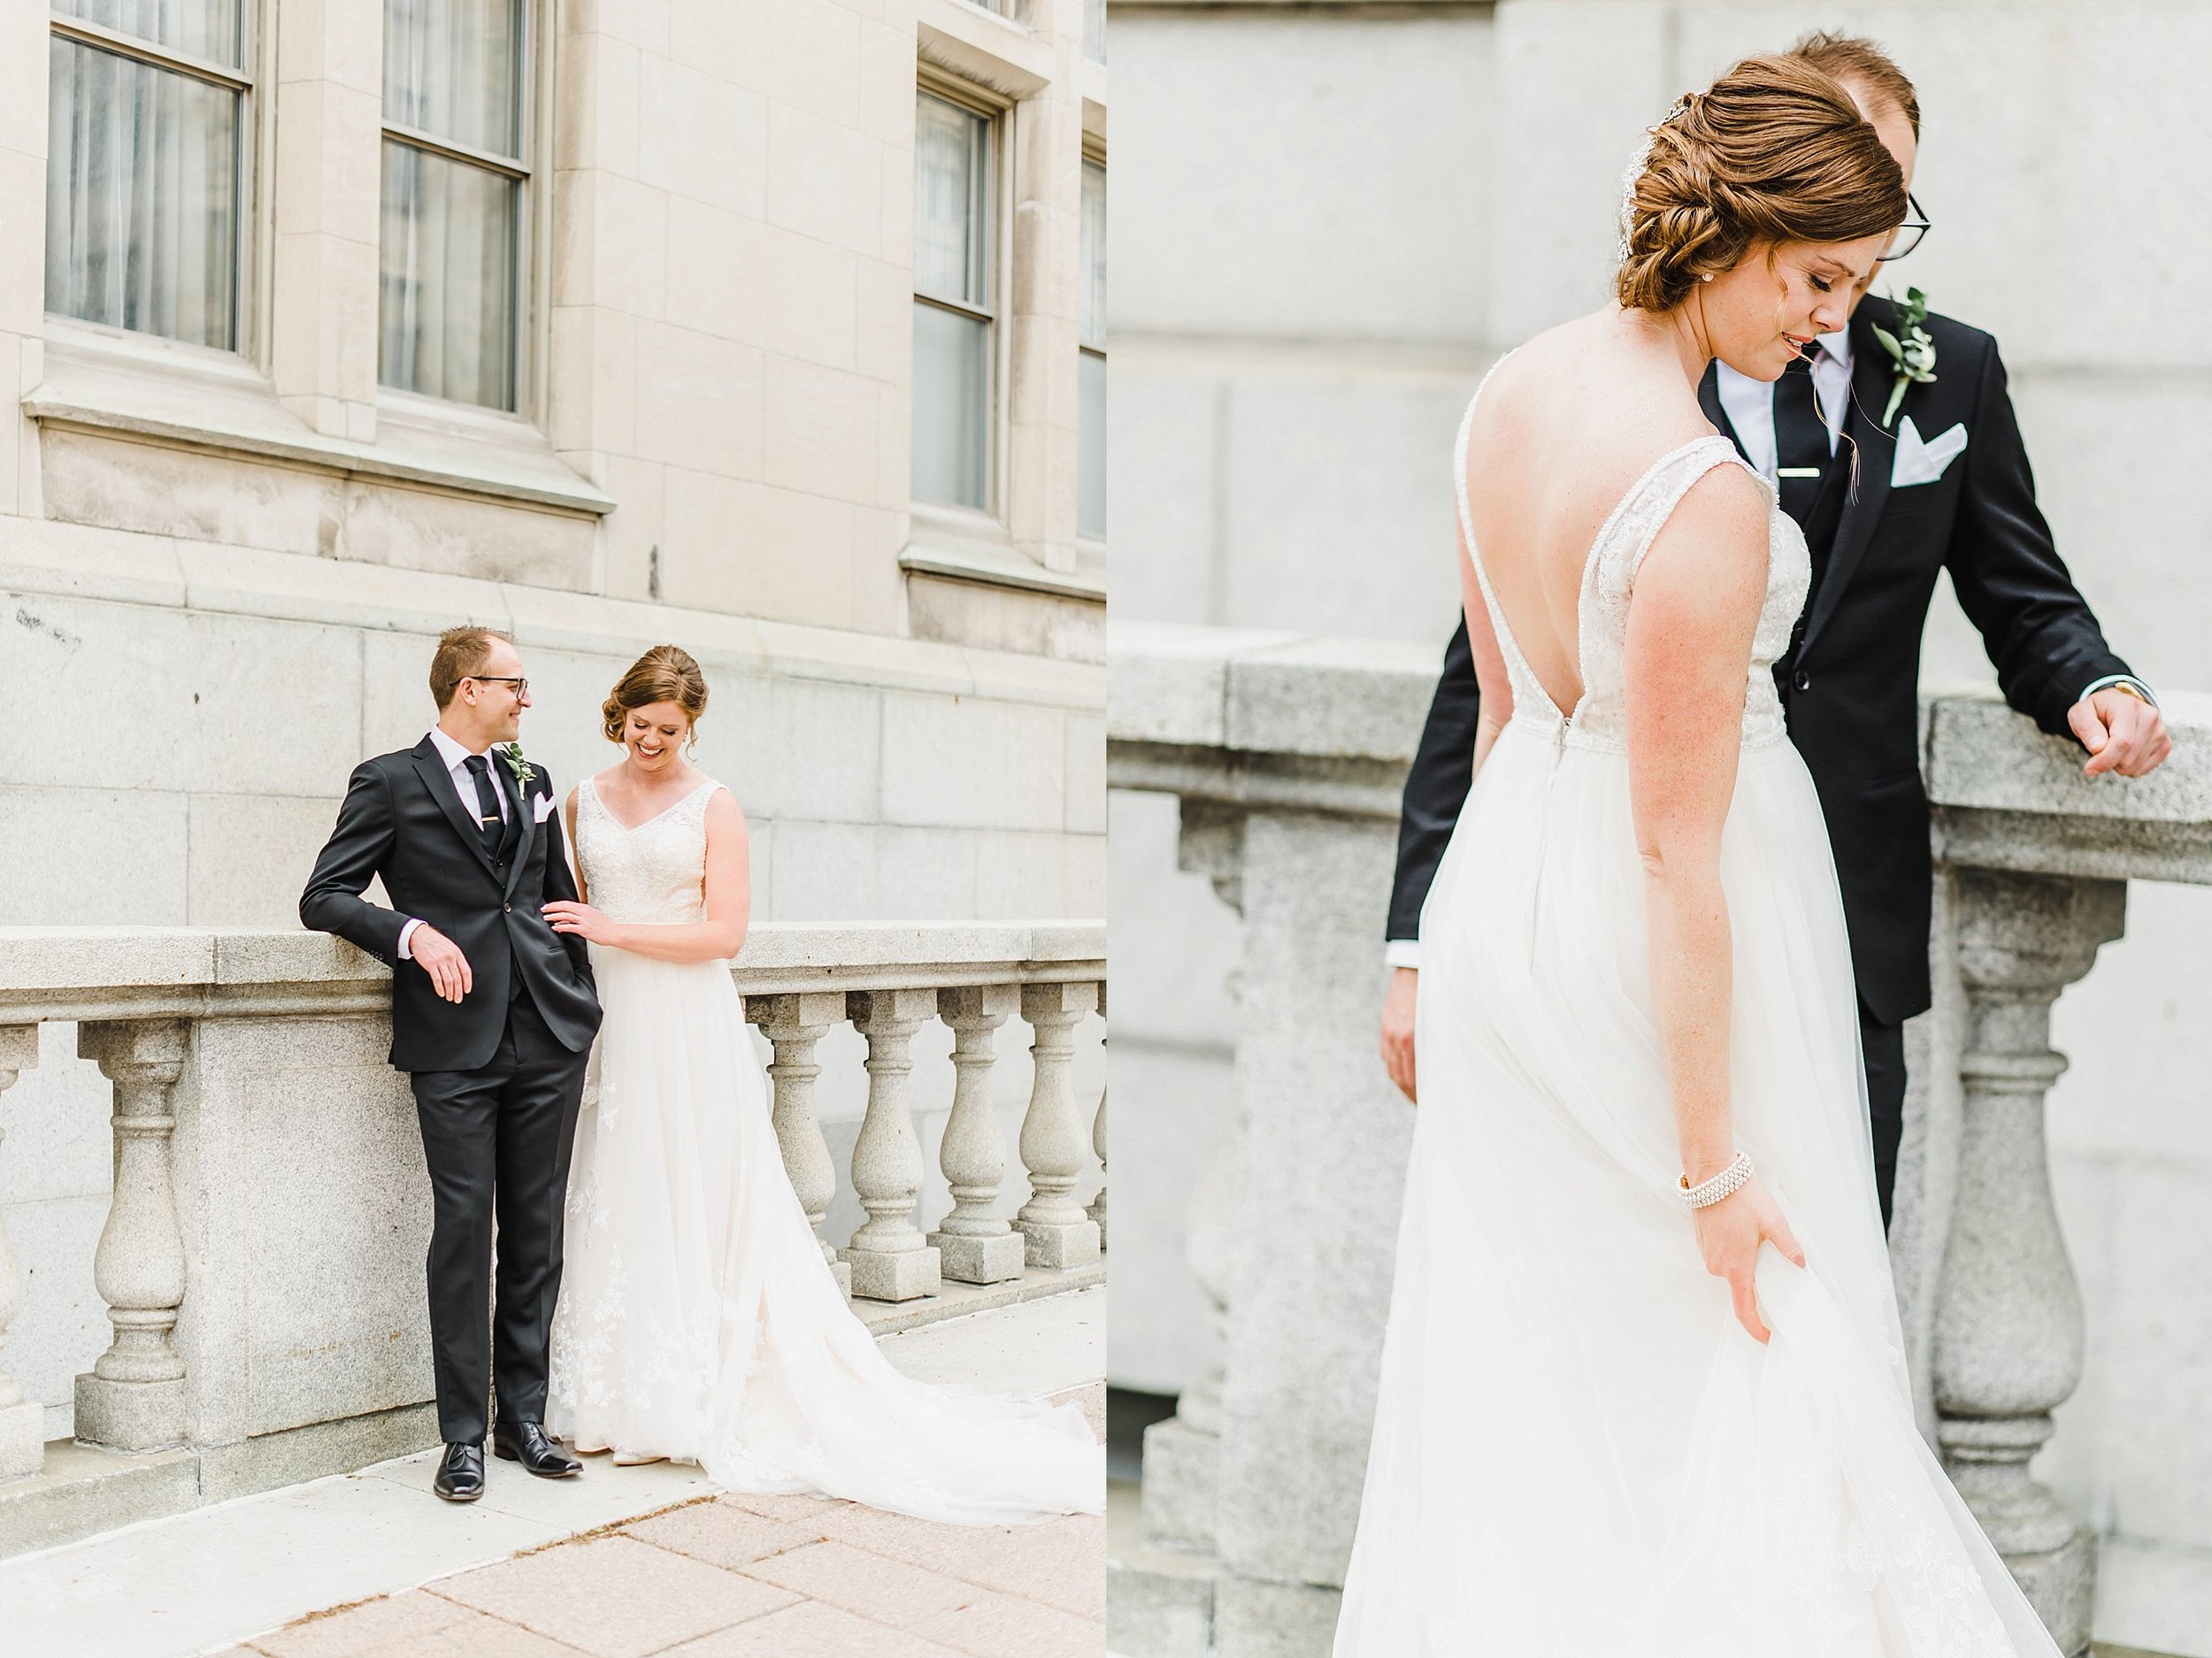 light airy indie fine art ottawa wedding photographer | Ali and Batoul Photography_0325.jpg